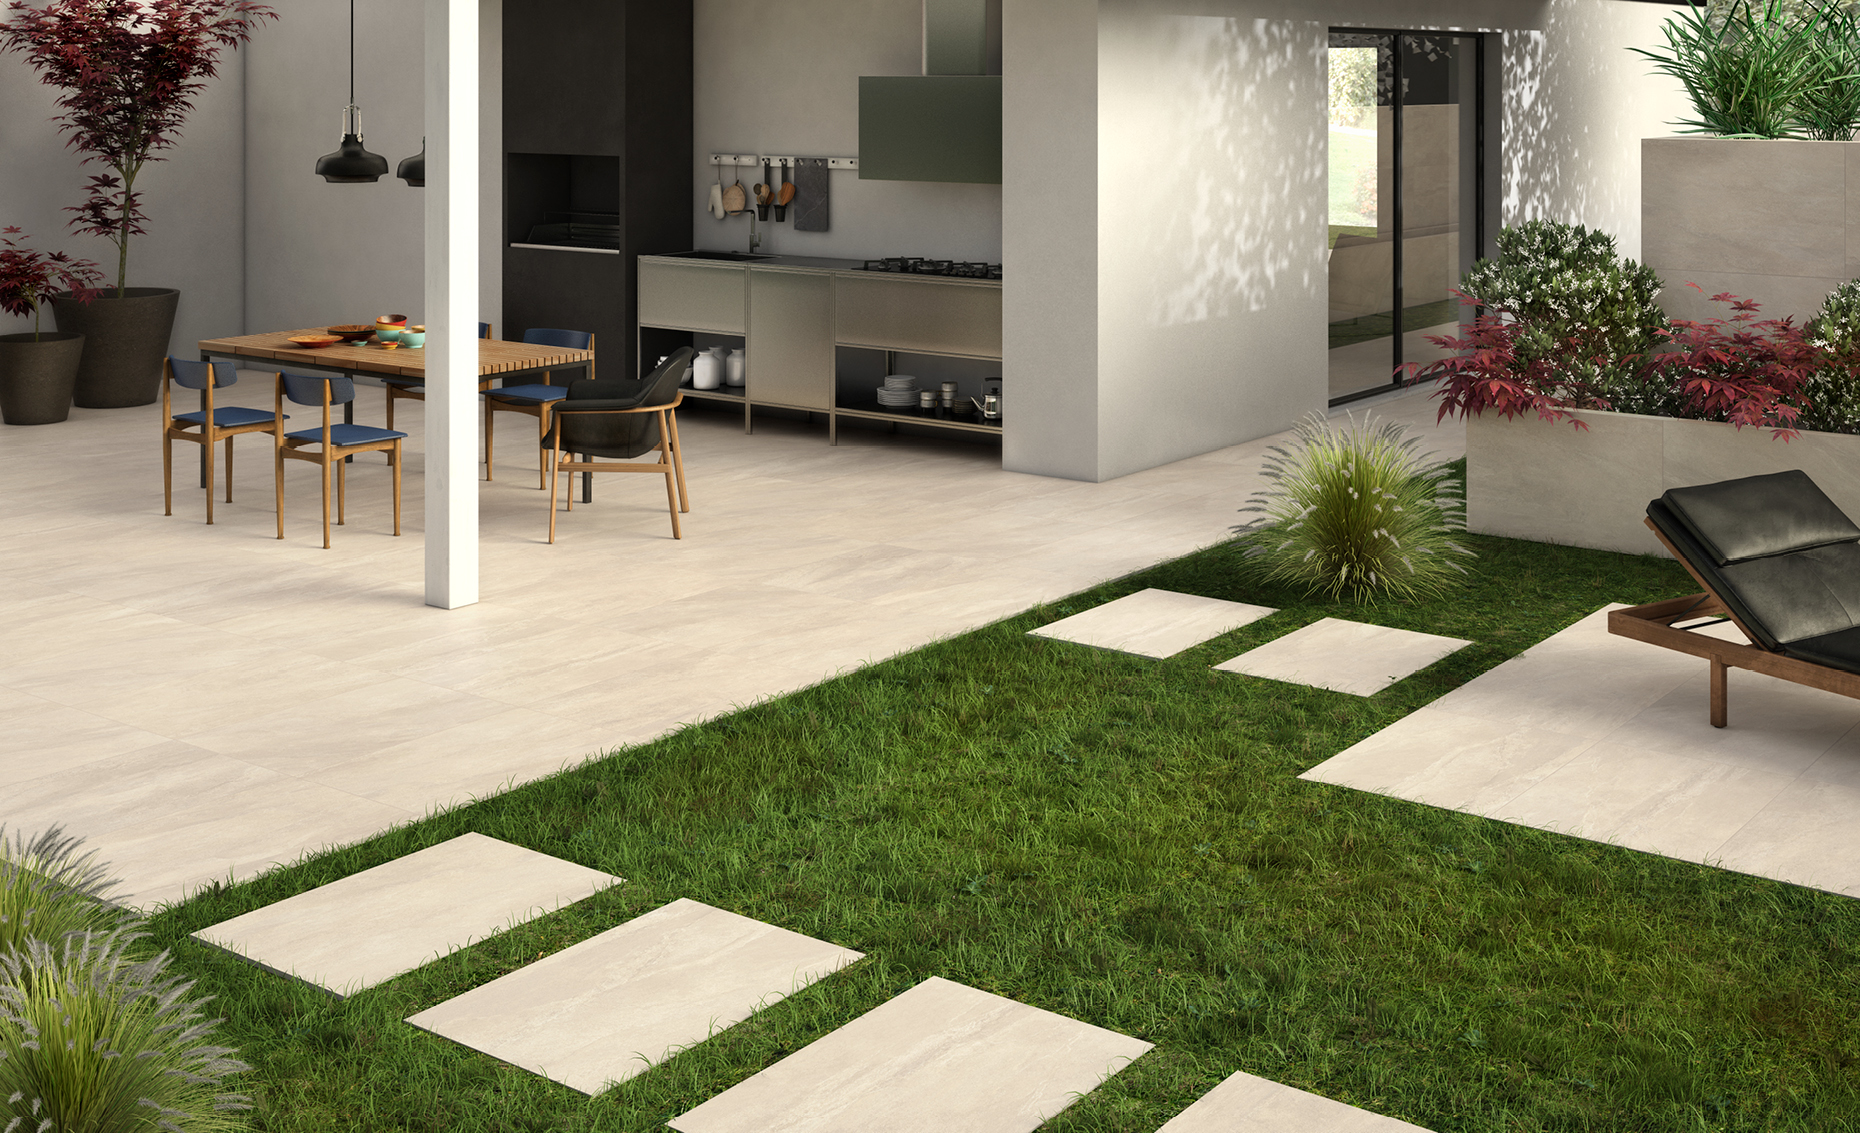 BOARD 2THICK PORCELAIN PAVERS  -SPECIAL ORDER-